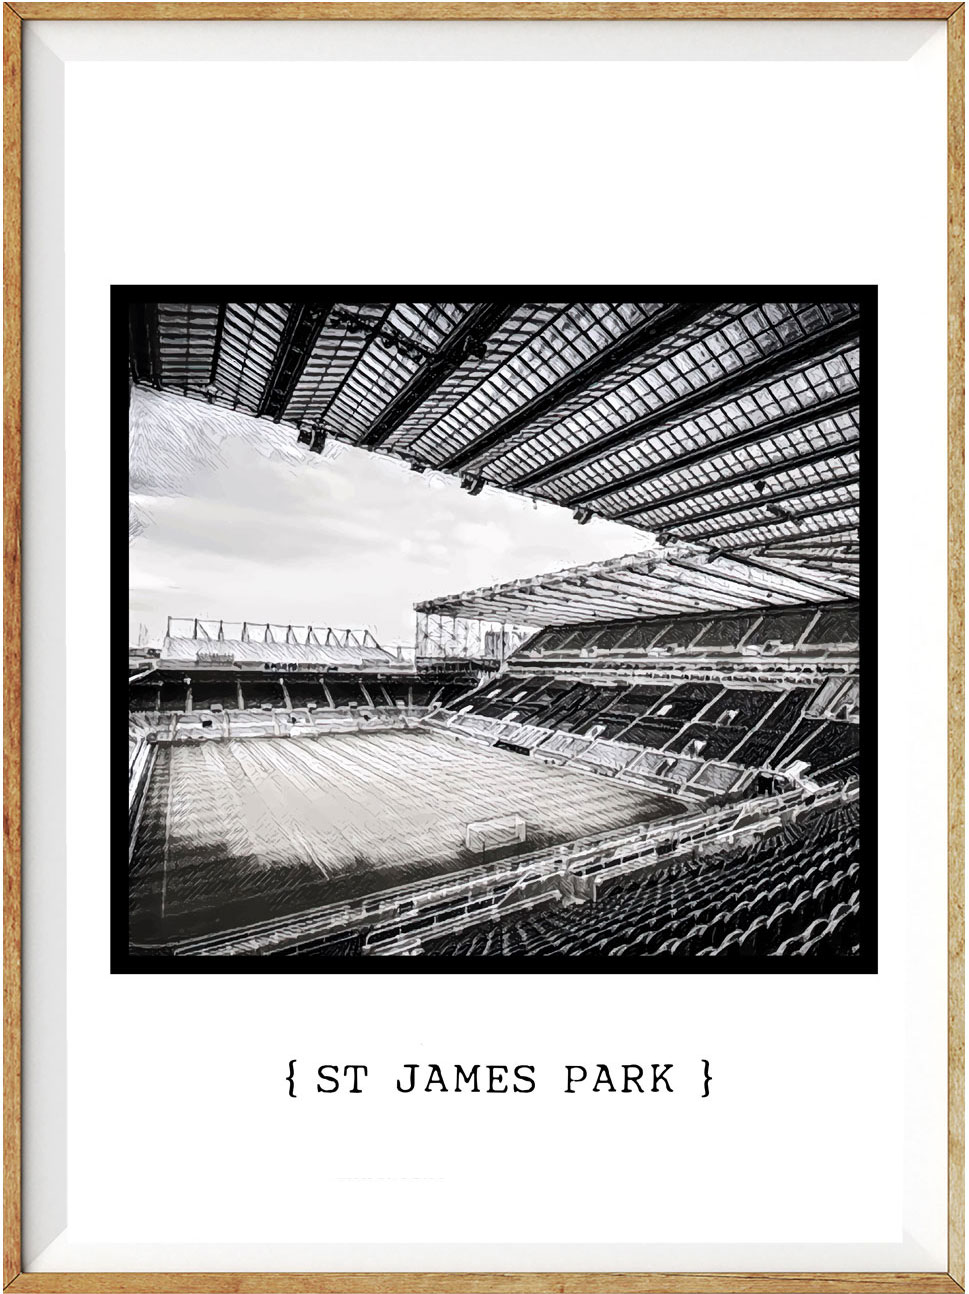 Newcastle St James Park1